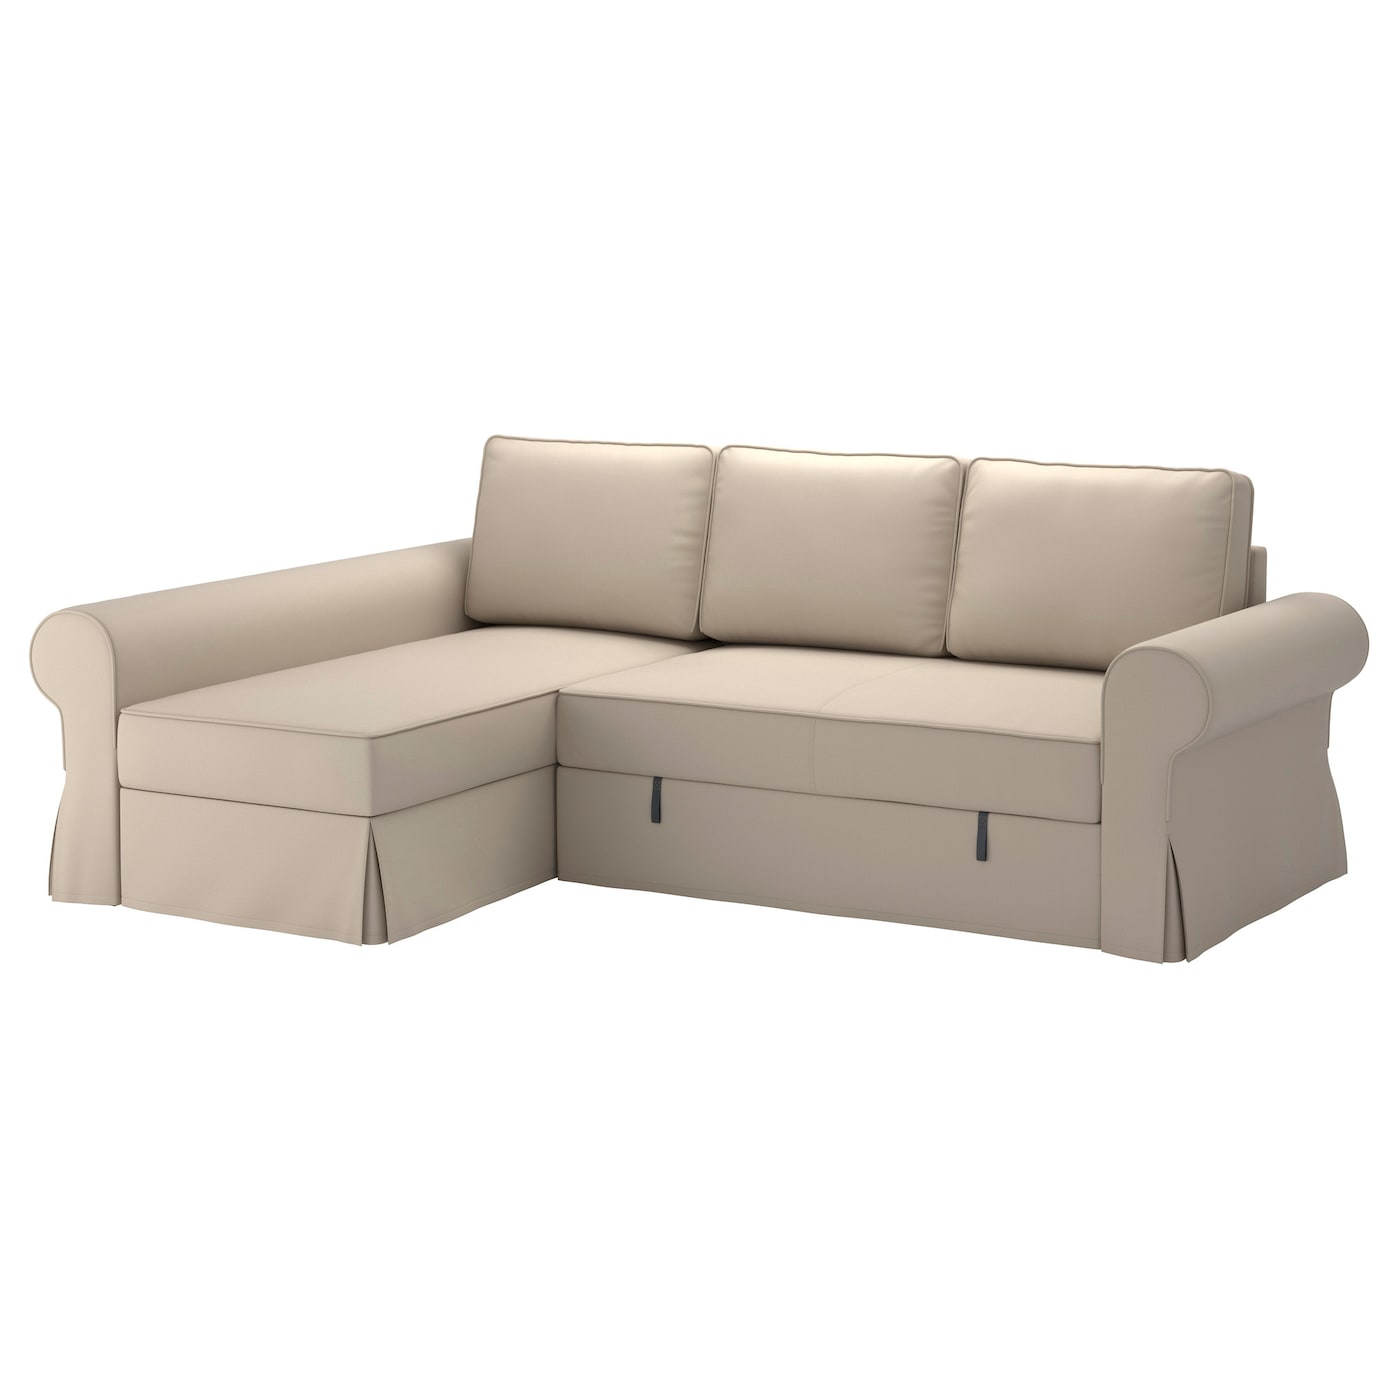 Backabro cover sofa bed with chaise longue ramna beige ikea for Chaise urban ikea